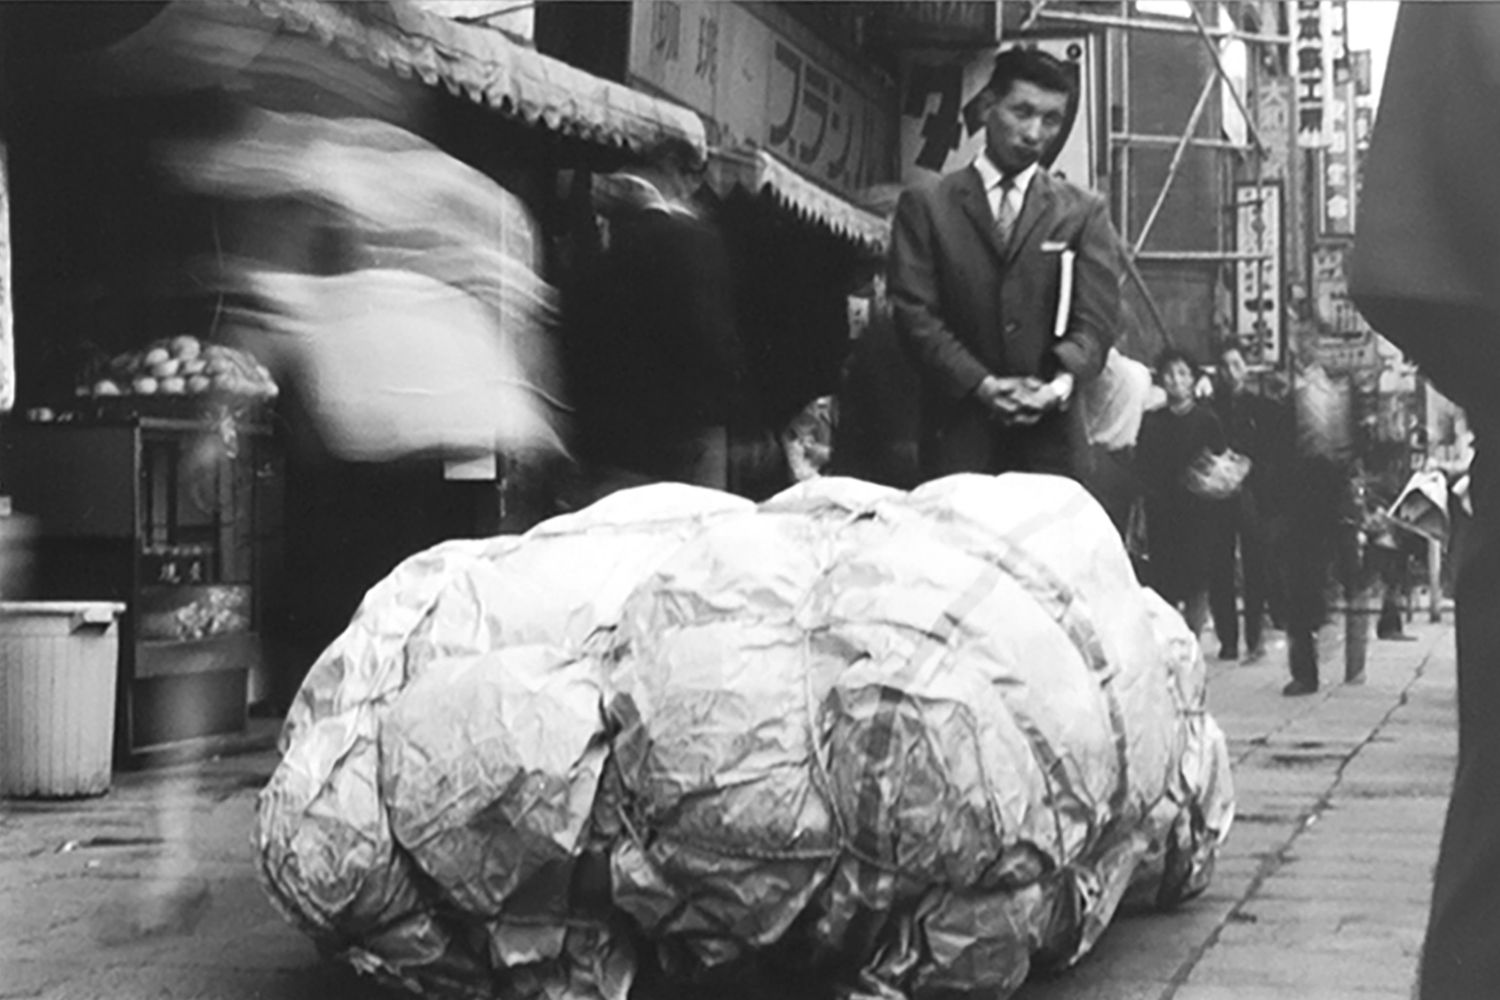 Jiro Takamatsu, 'Package' placed on the road in the course of The 6th Mixer Plan., 1963